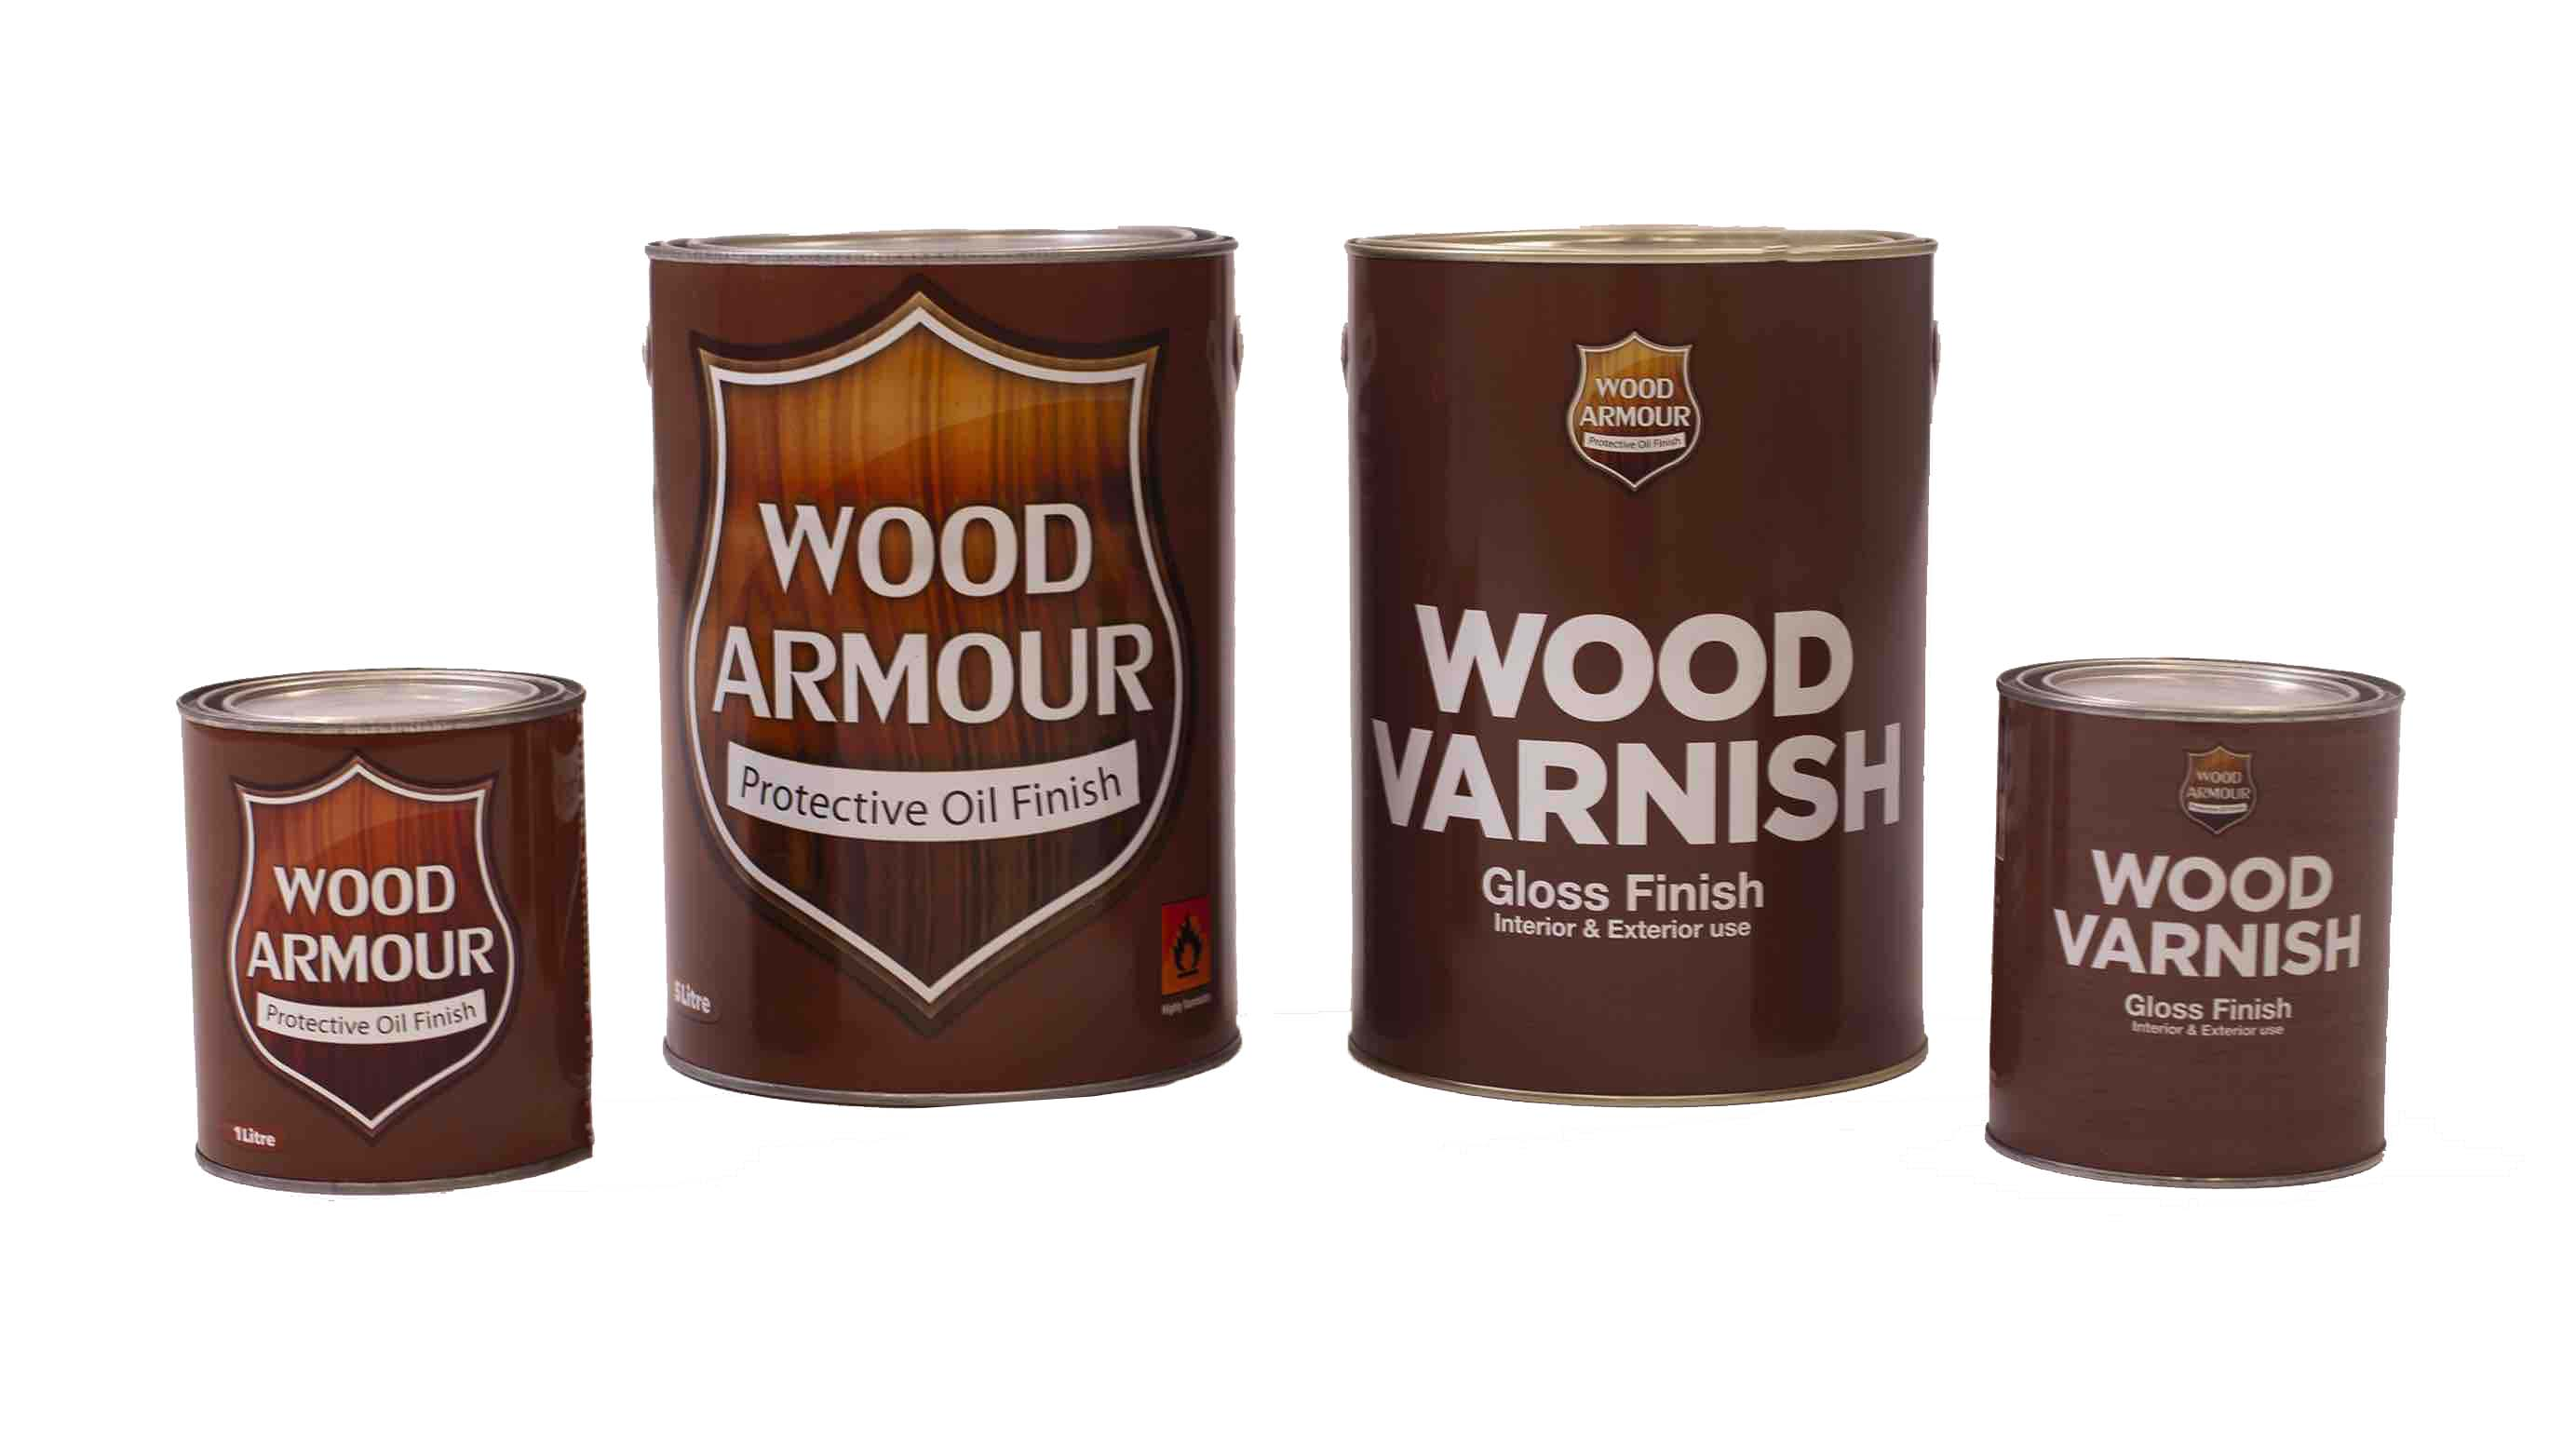 Wood Armour 5 Litre and 1 Litre Cans White Background